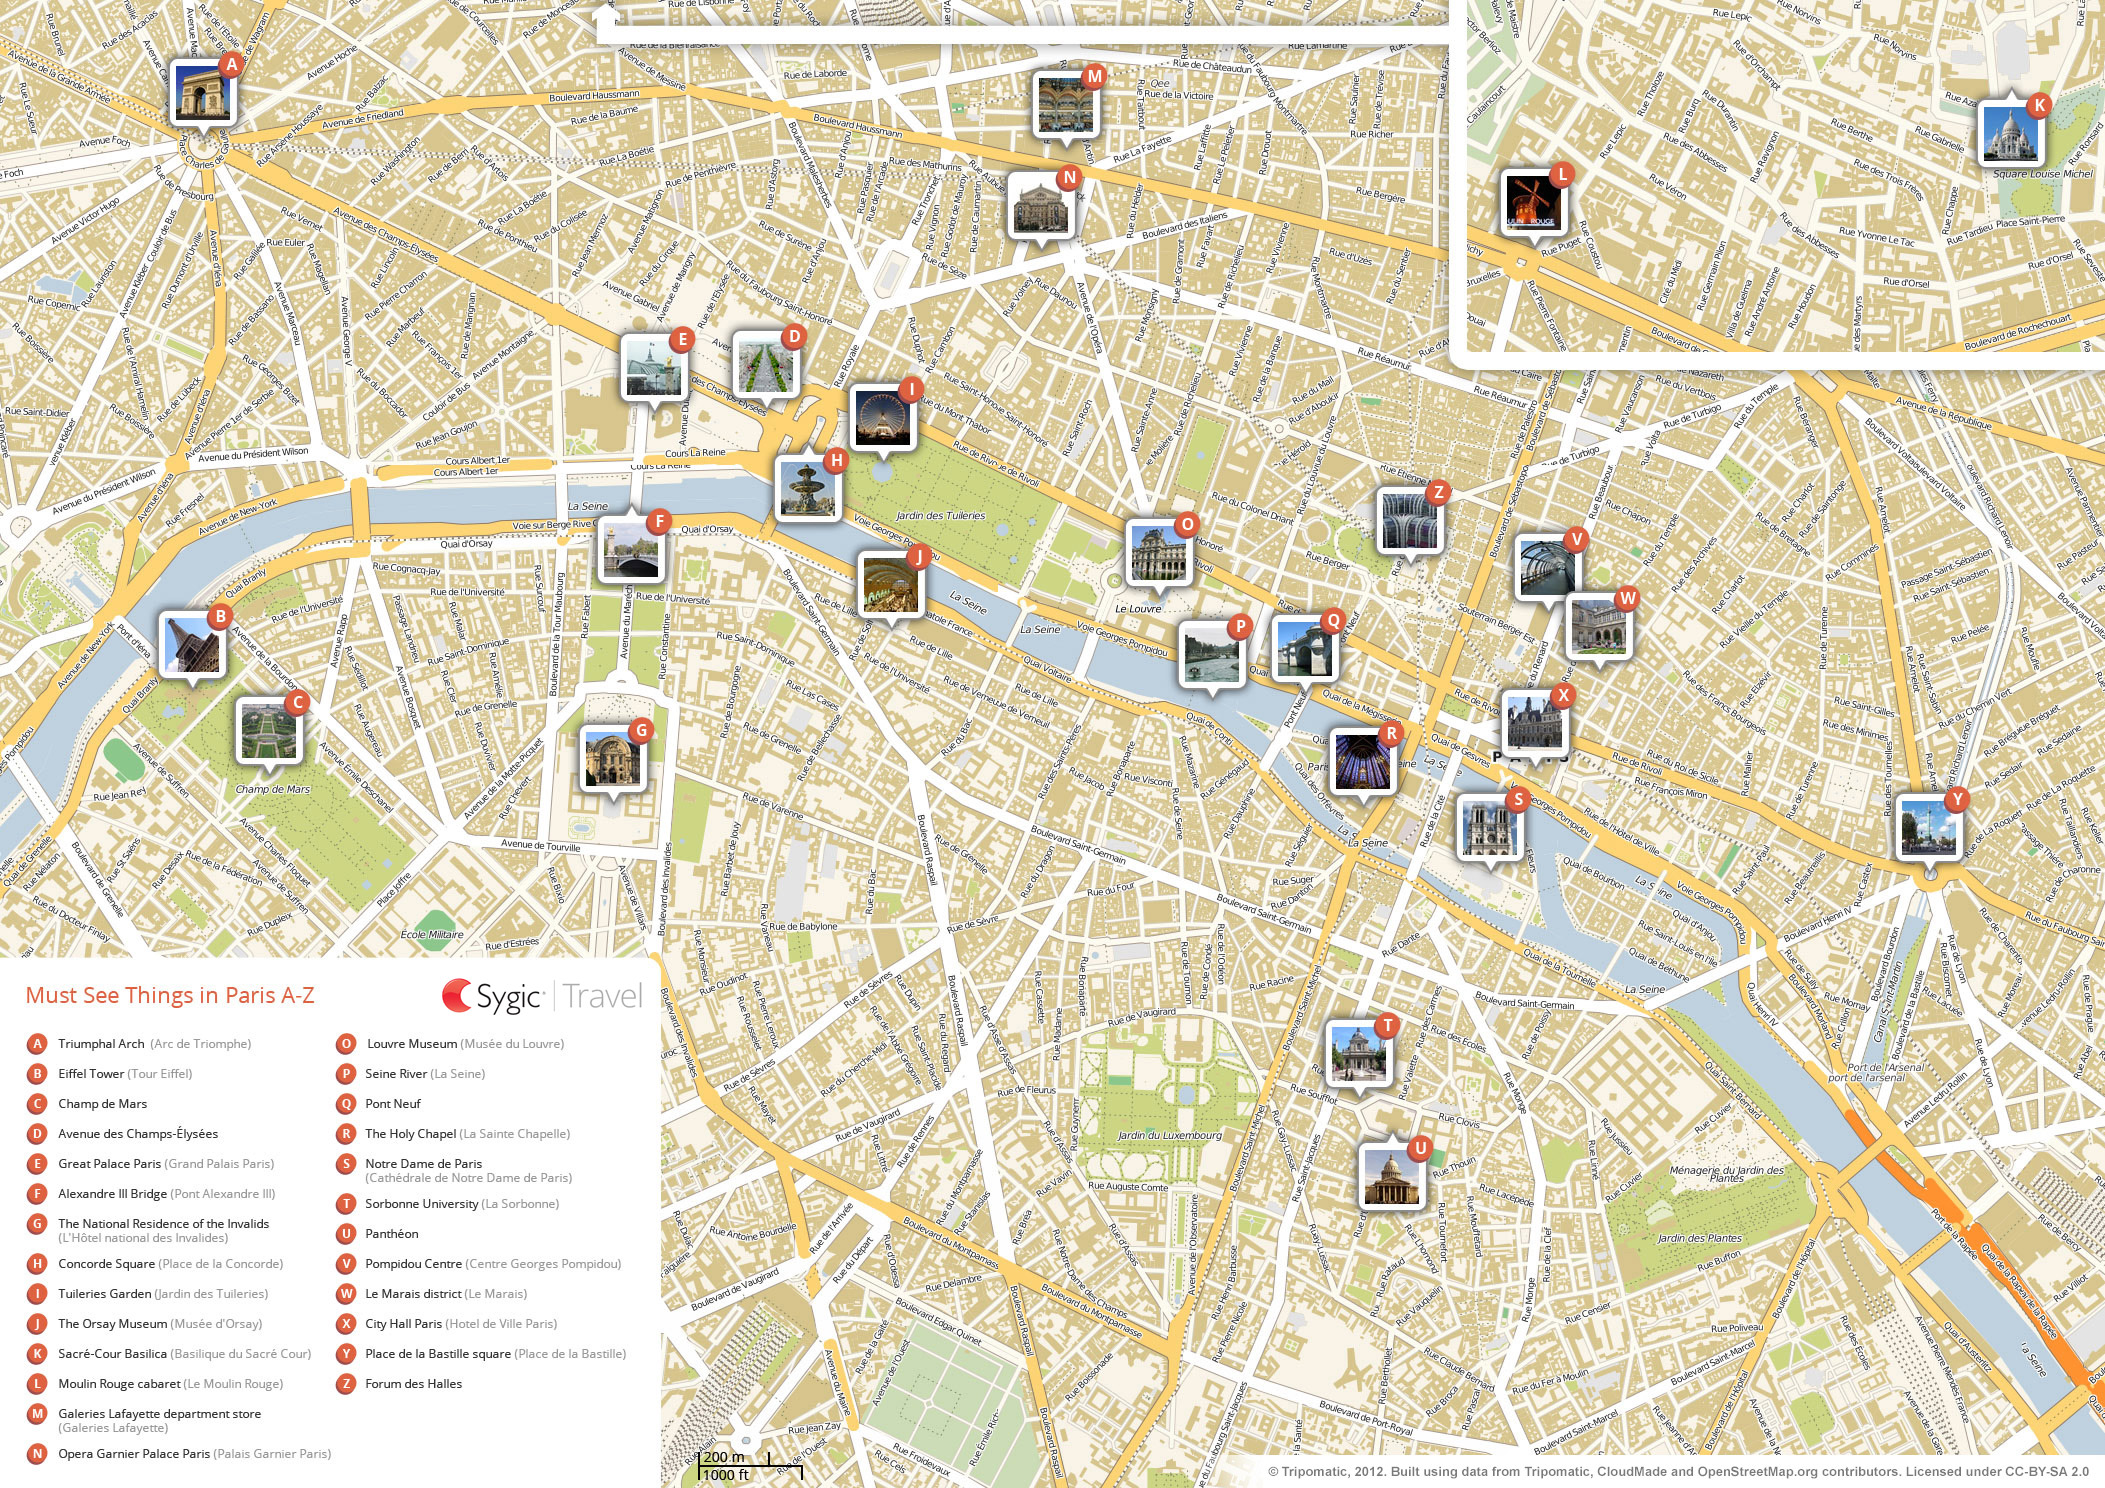 paris-attractions-map-large.jpg